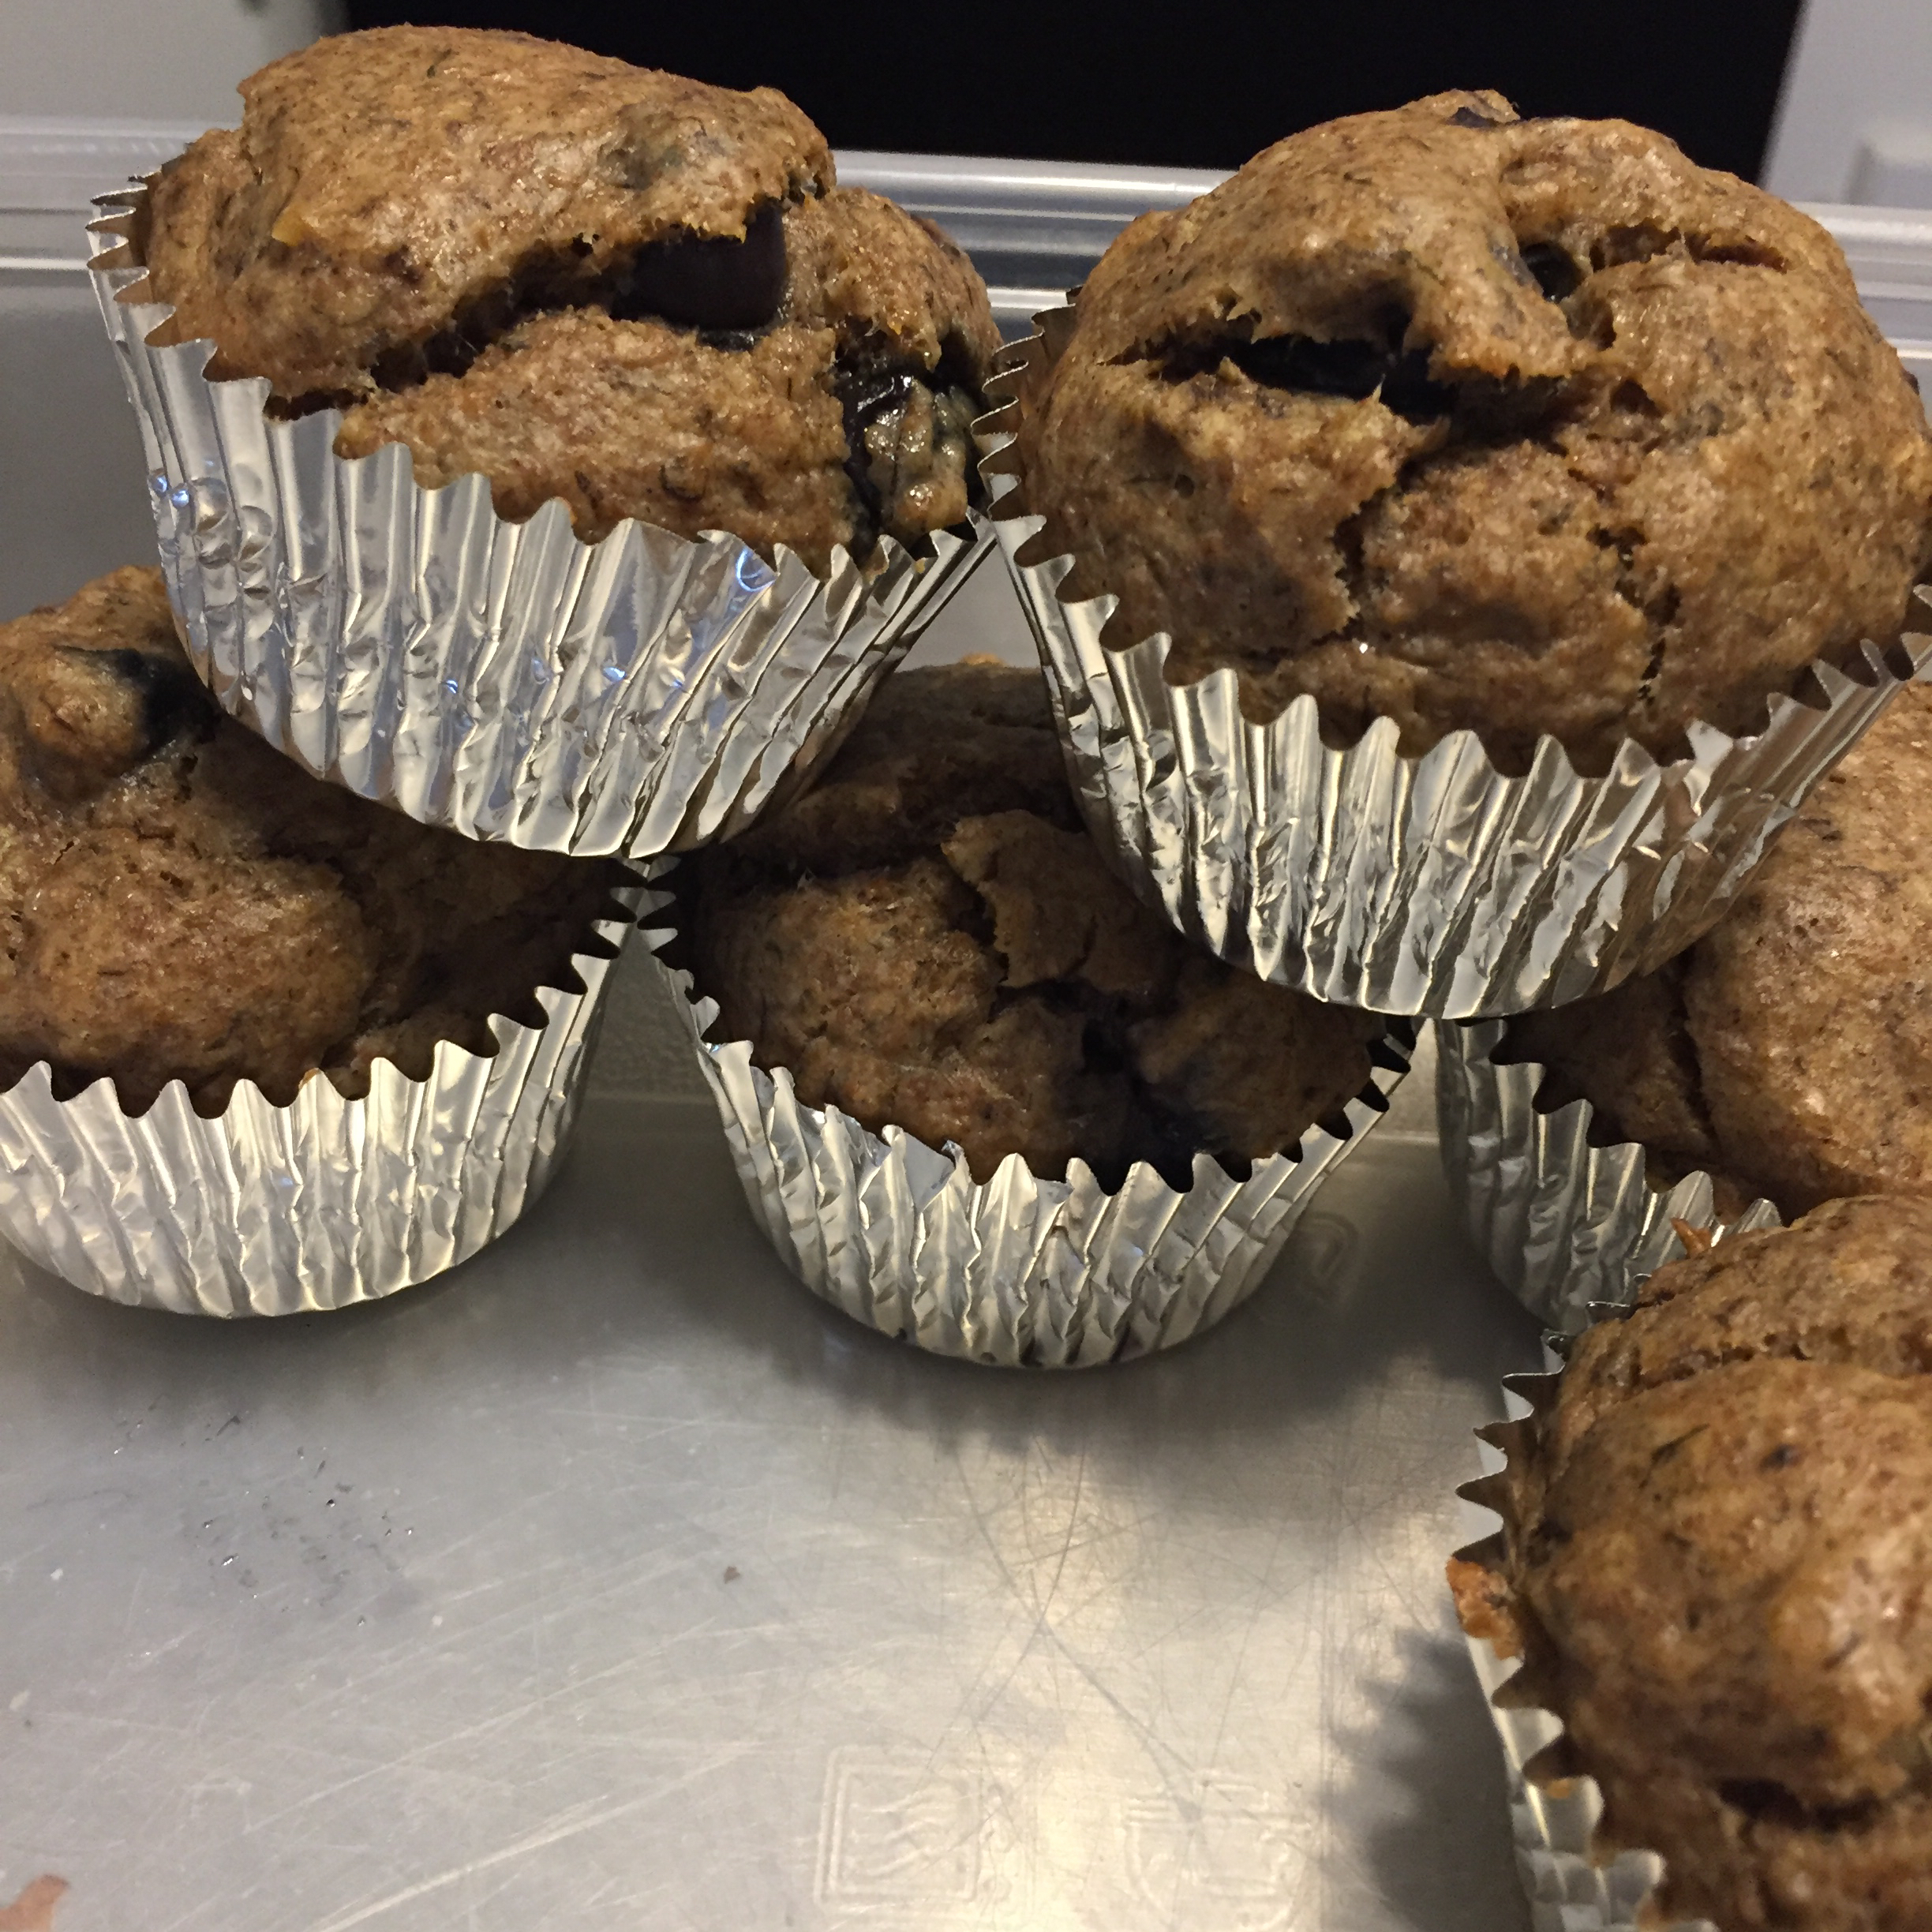 Banana Blueberry Muffins lacarr5